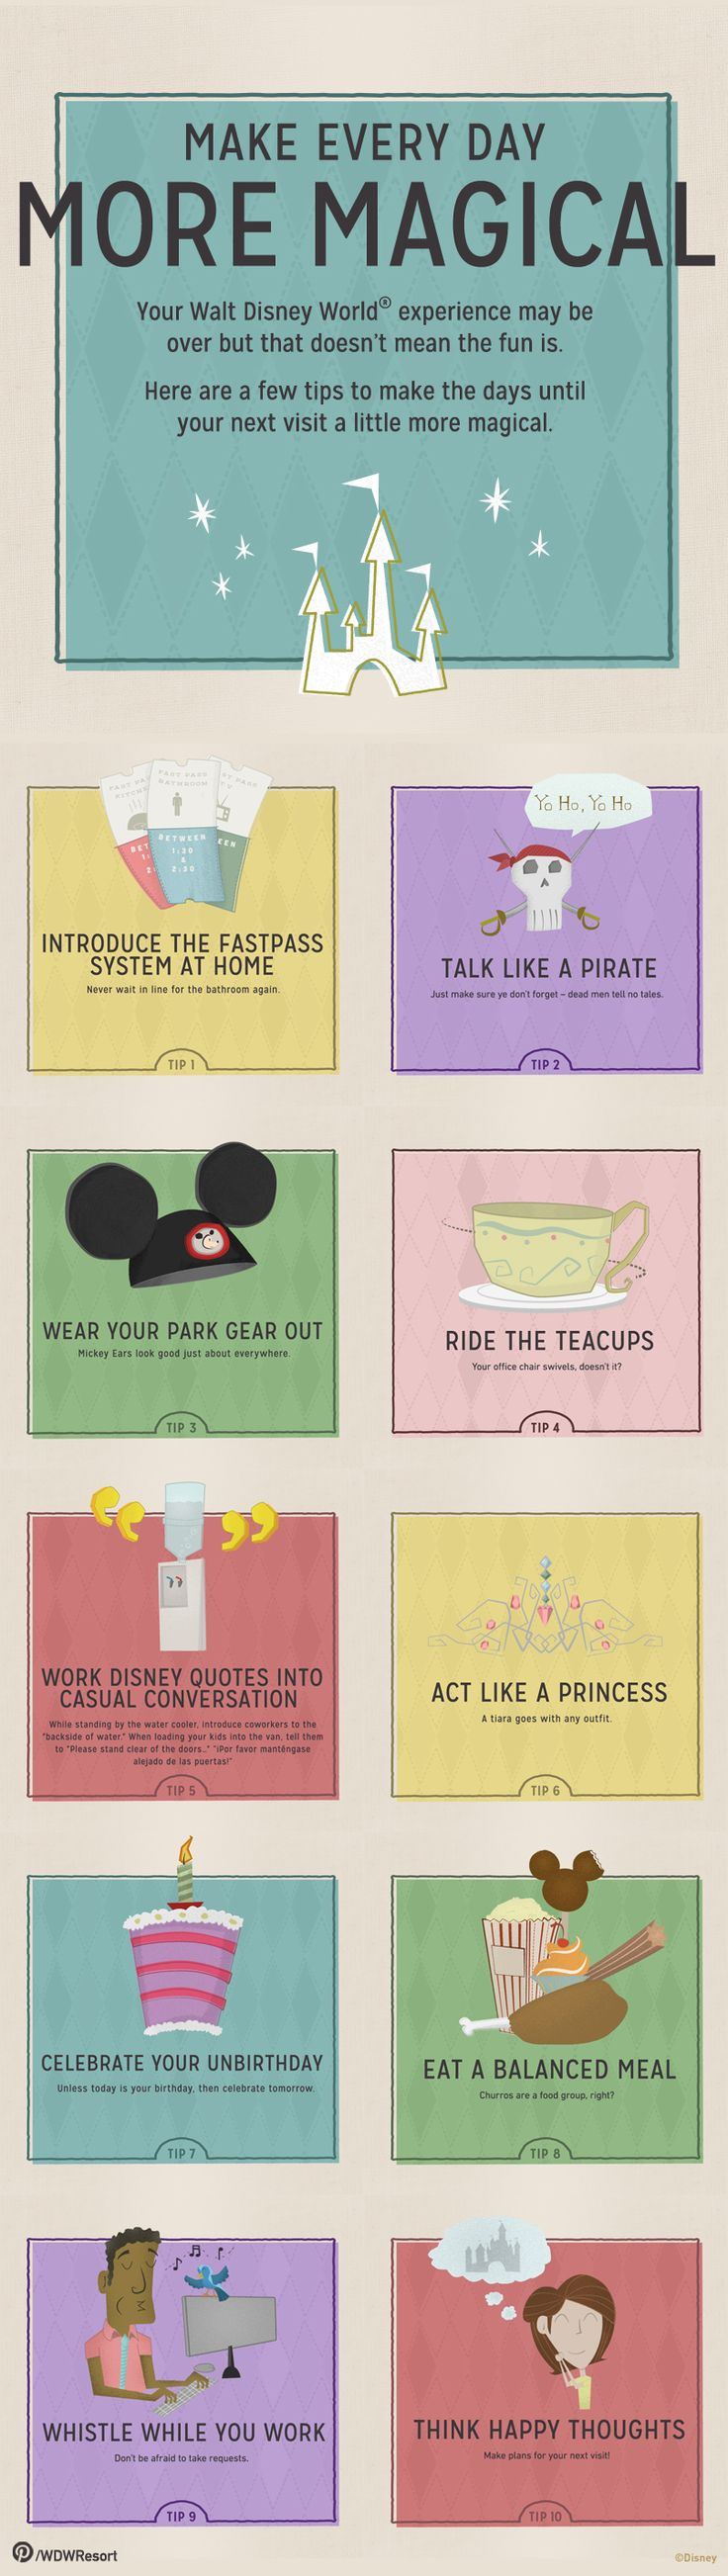 .Make every day more magical...tips for surviving between Disney parks trips.